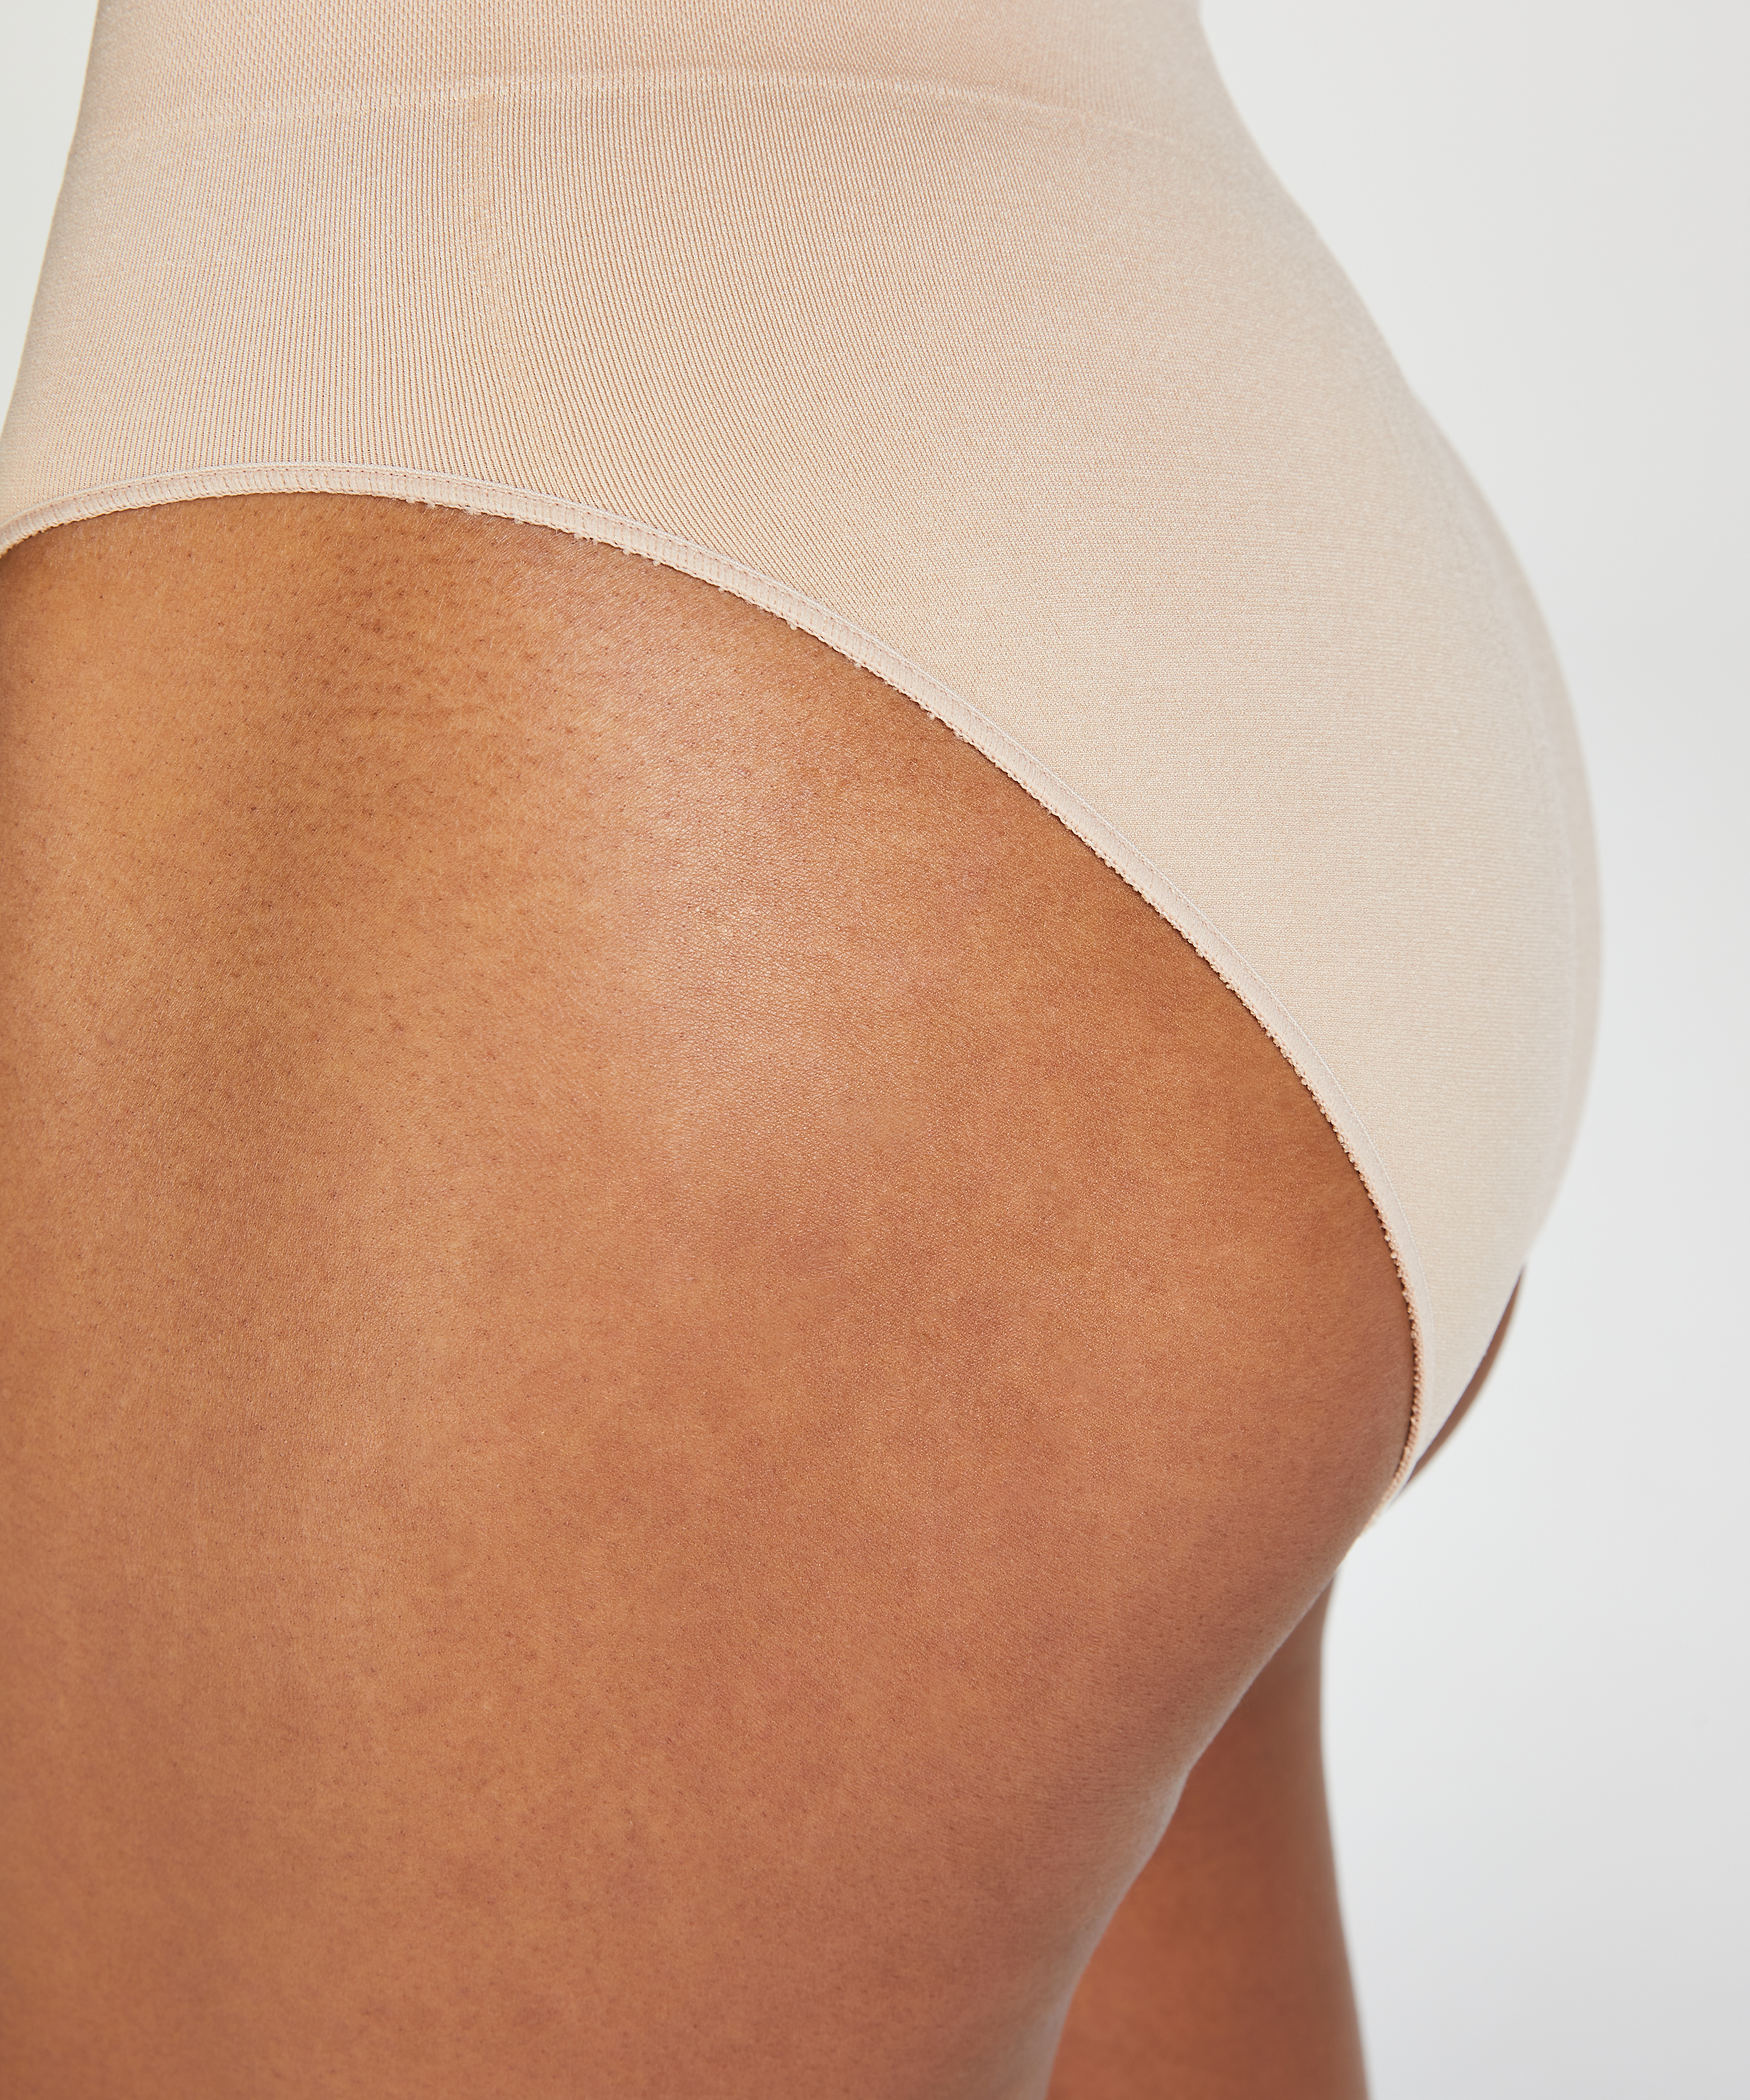 Firming high knickers - Level 2, Beige, main